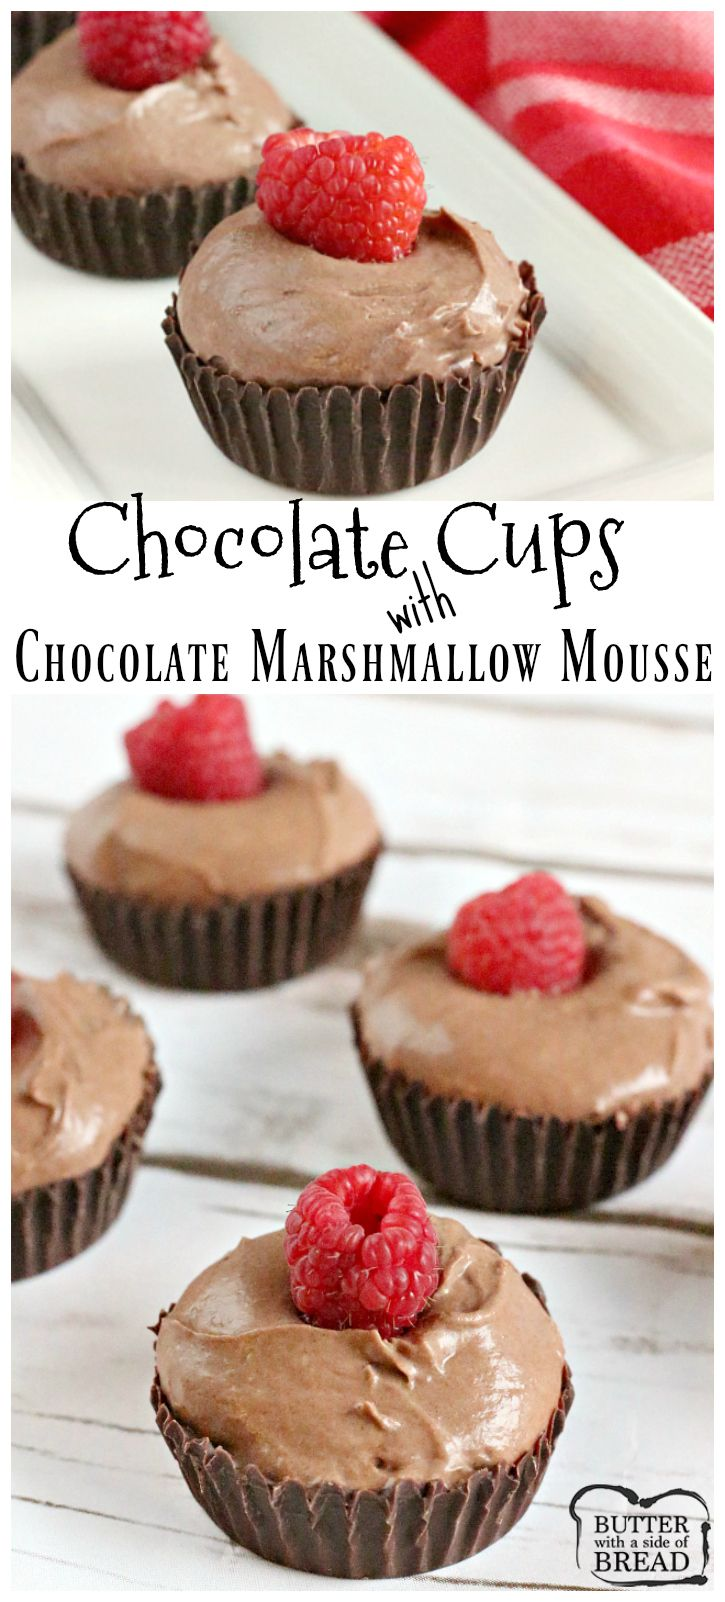 Show stopping dessert with little effort- Chocolate Cups filled with Chocolate Marshmallow Mousse is incredible! Butter With A side of Bread via @ButterGirls